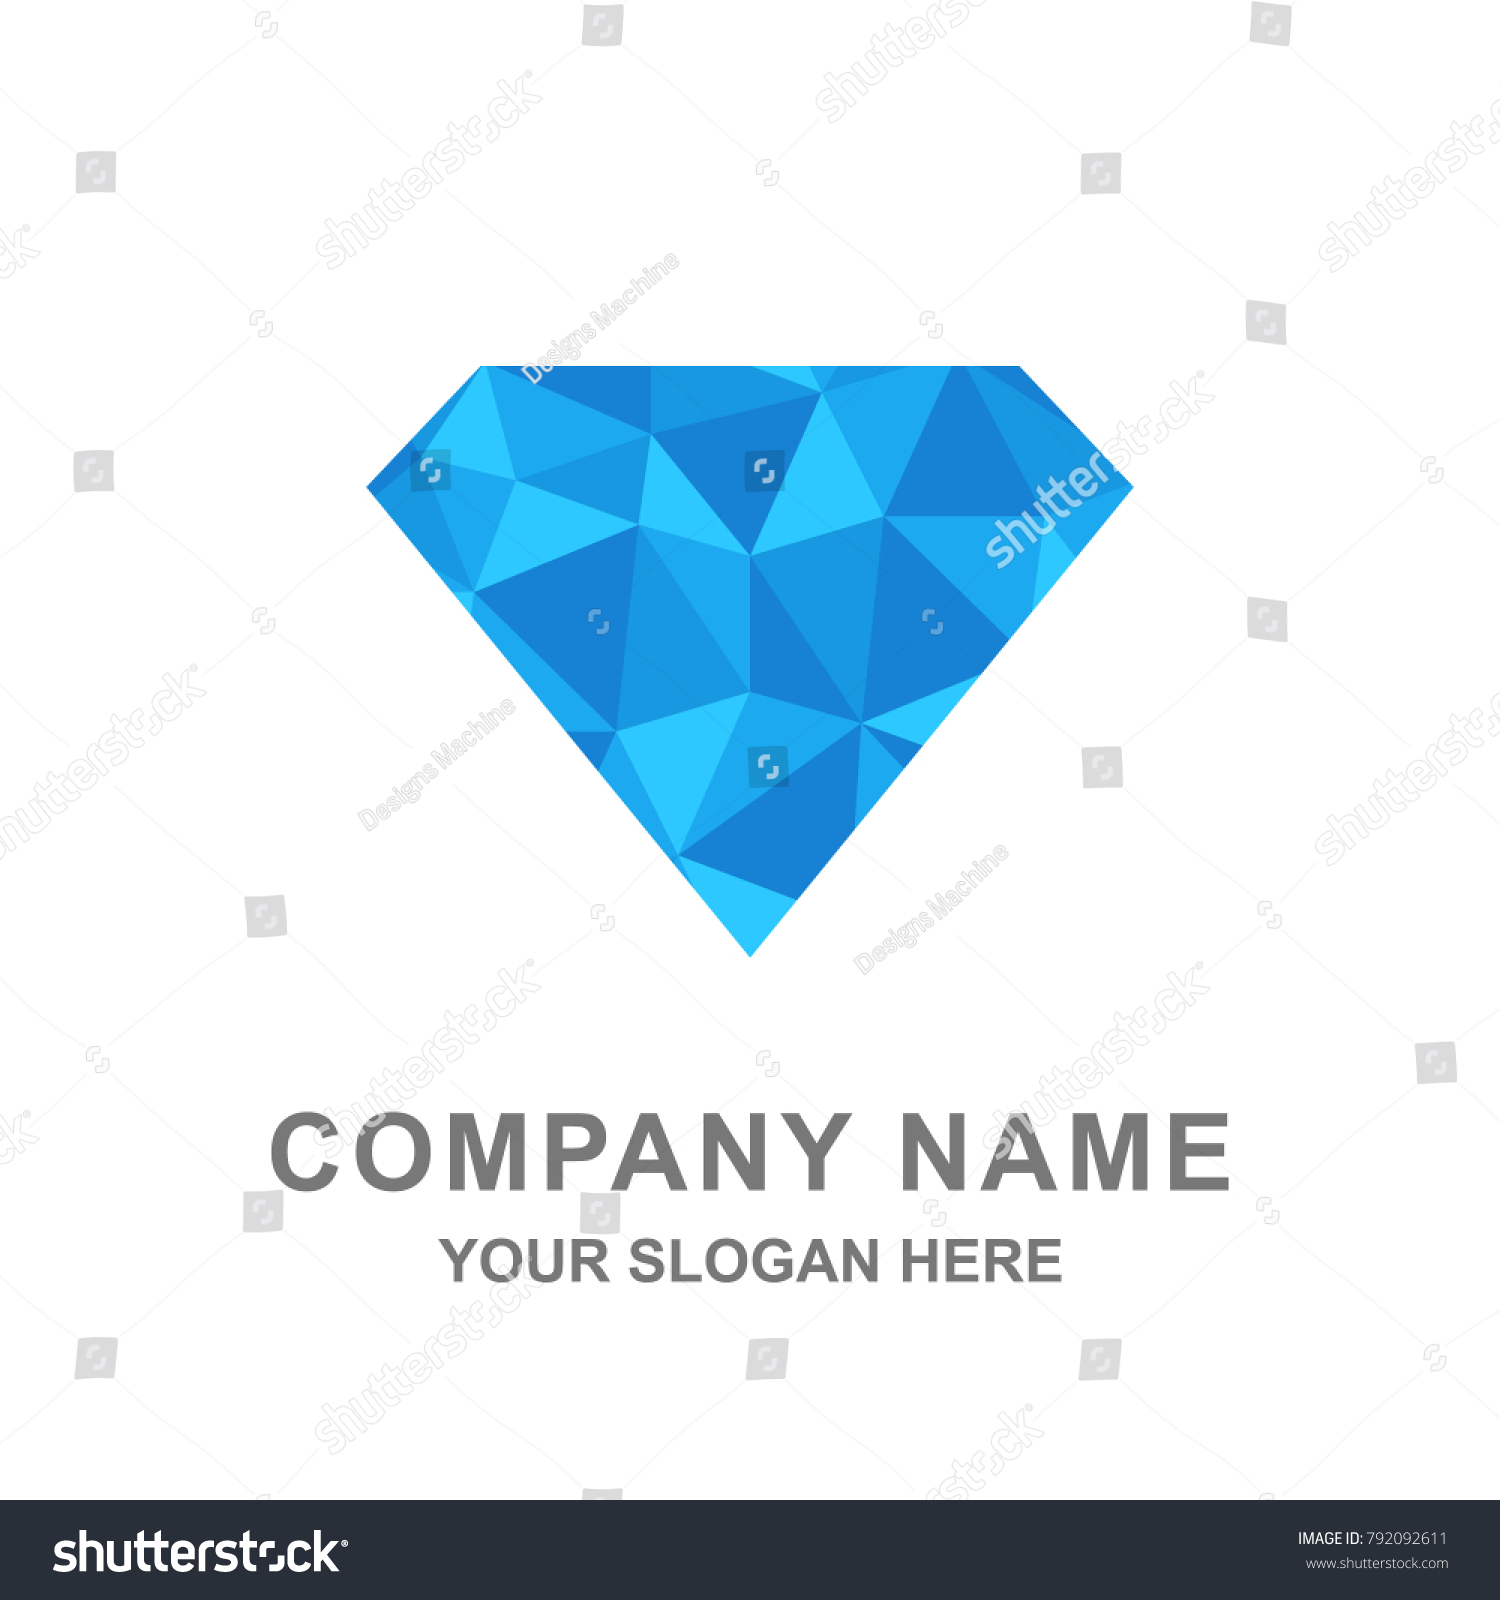 pink depositphotos shapes illustration polygon geometric poster trendy stock crystal color diamond cosmic of vector or